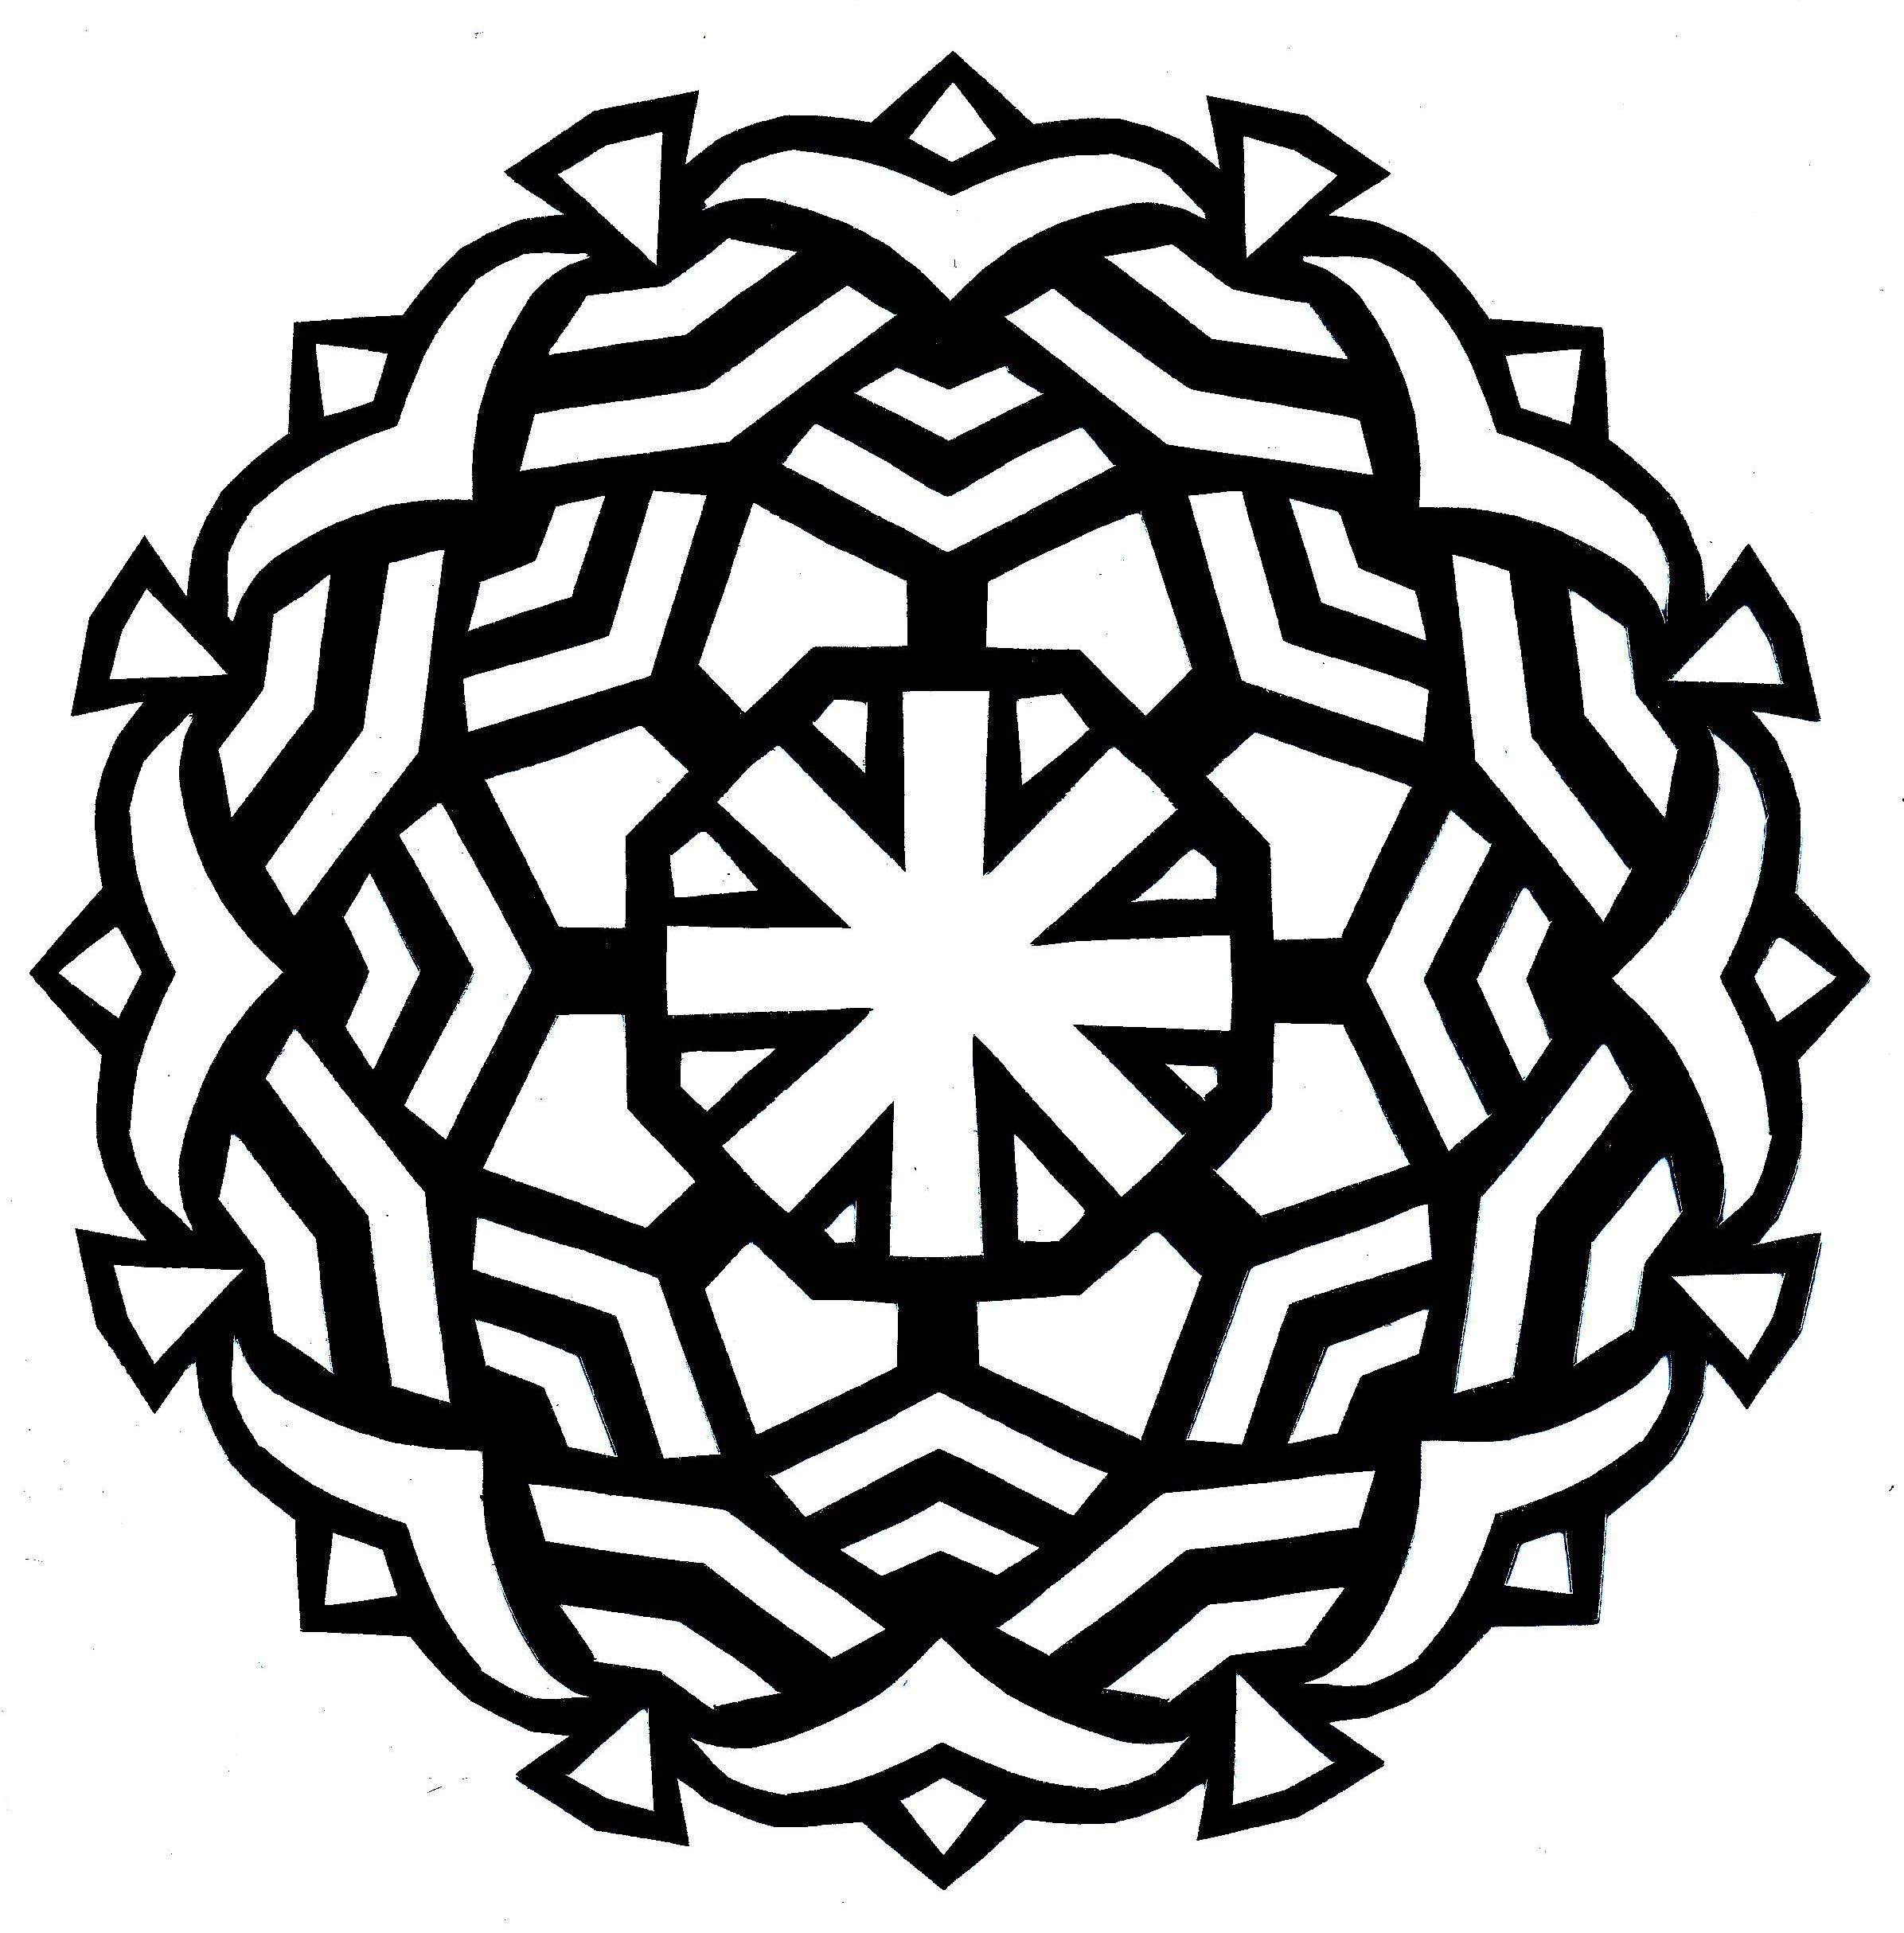 Trends For > Difficult Mandala Coloring Pages Printable | Coloring 4 ...